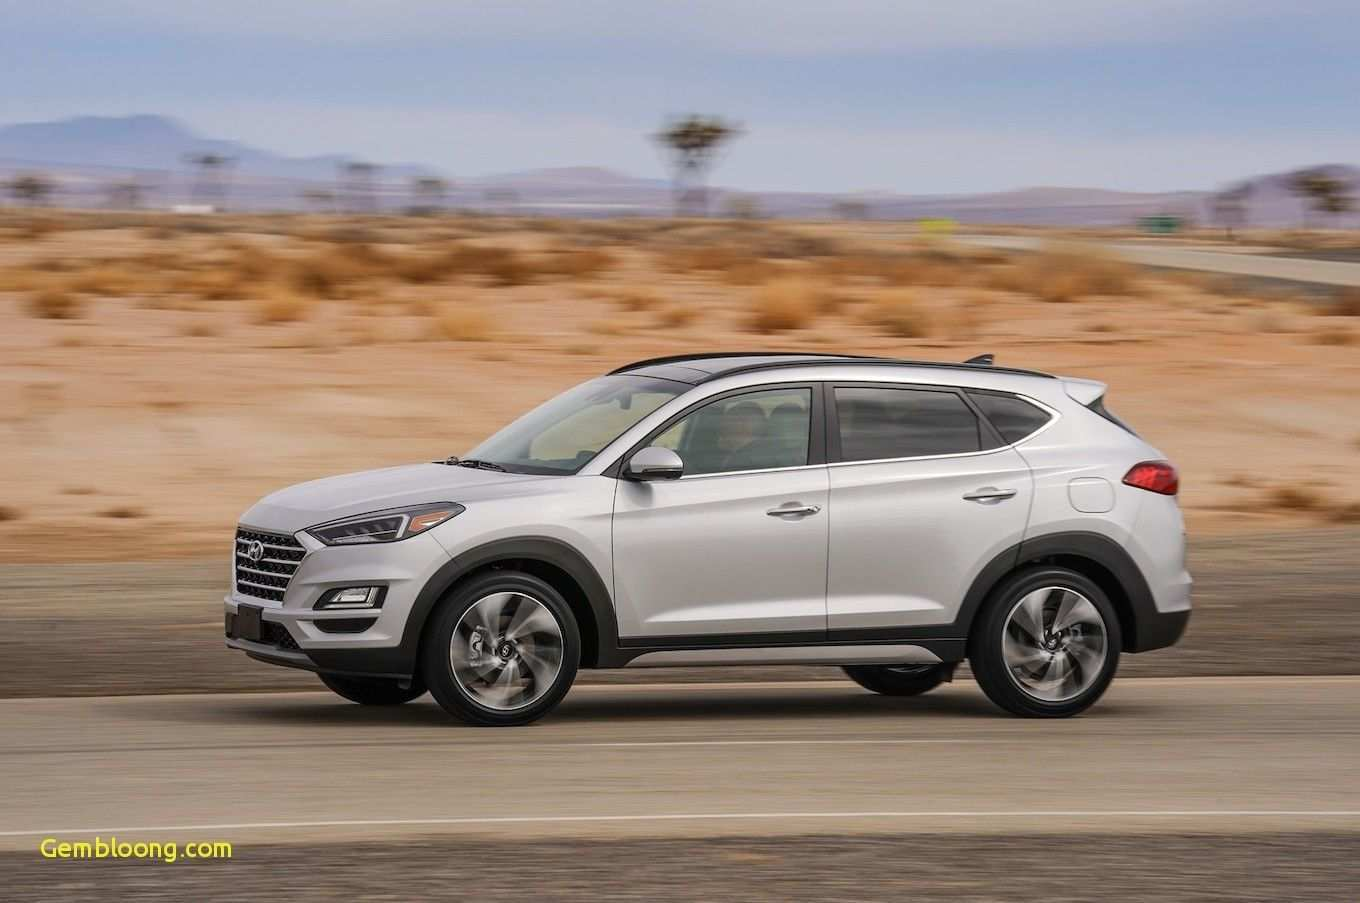 26 The Best 2019 Hyundai Veracruz Release Date